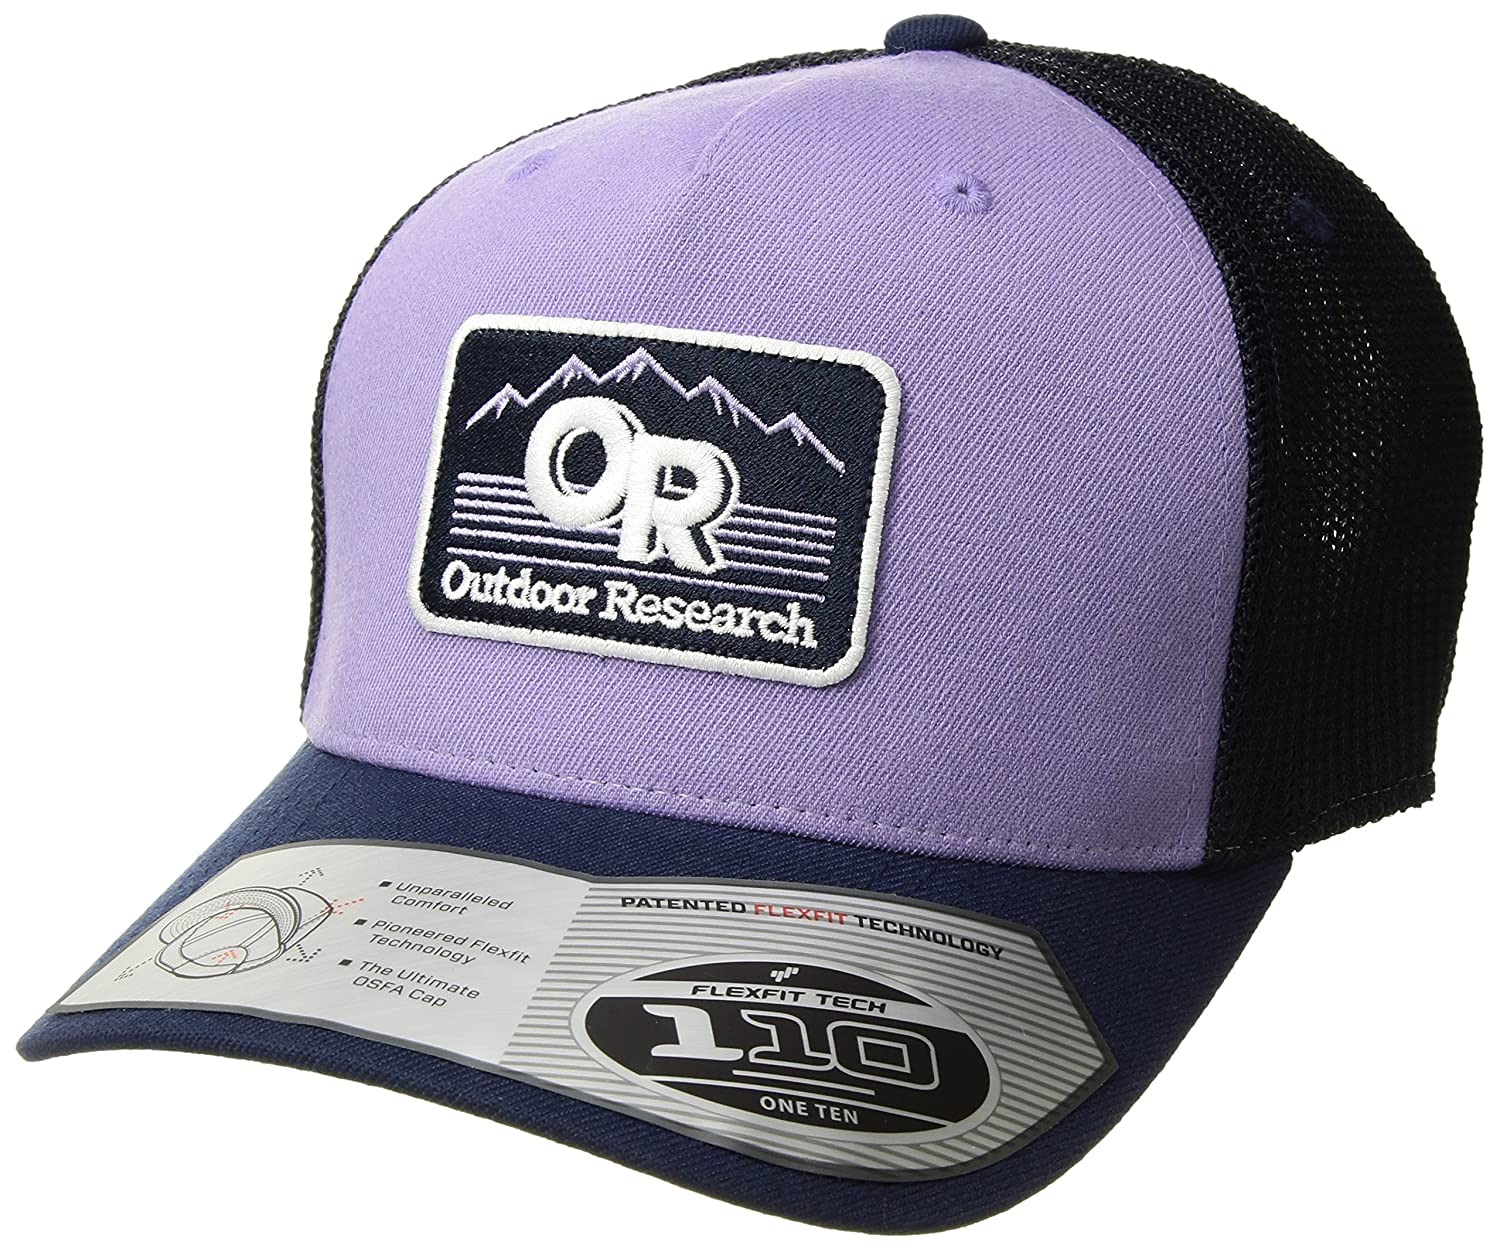 dc726ad3e1df2 Amazon.com  Outdoor Research Advocate Cap  Clothing